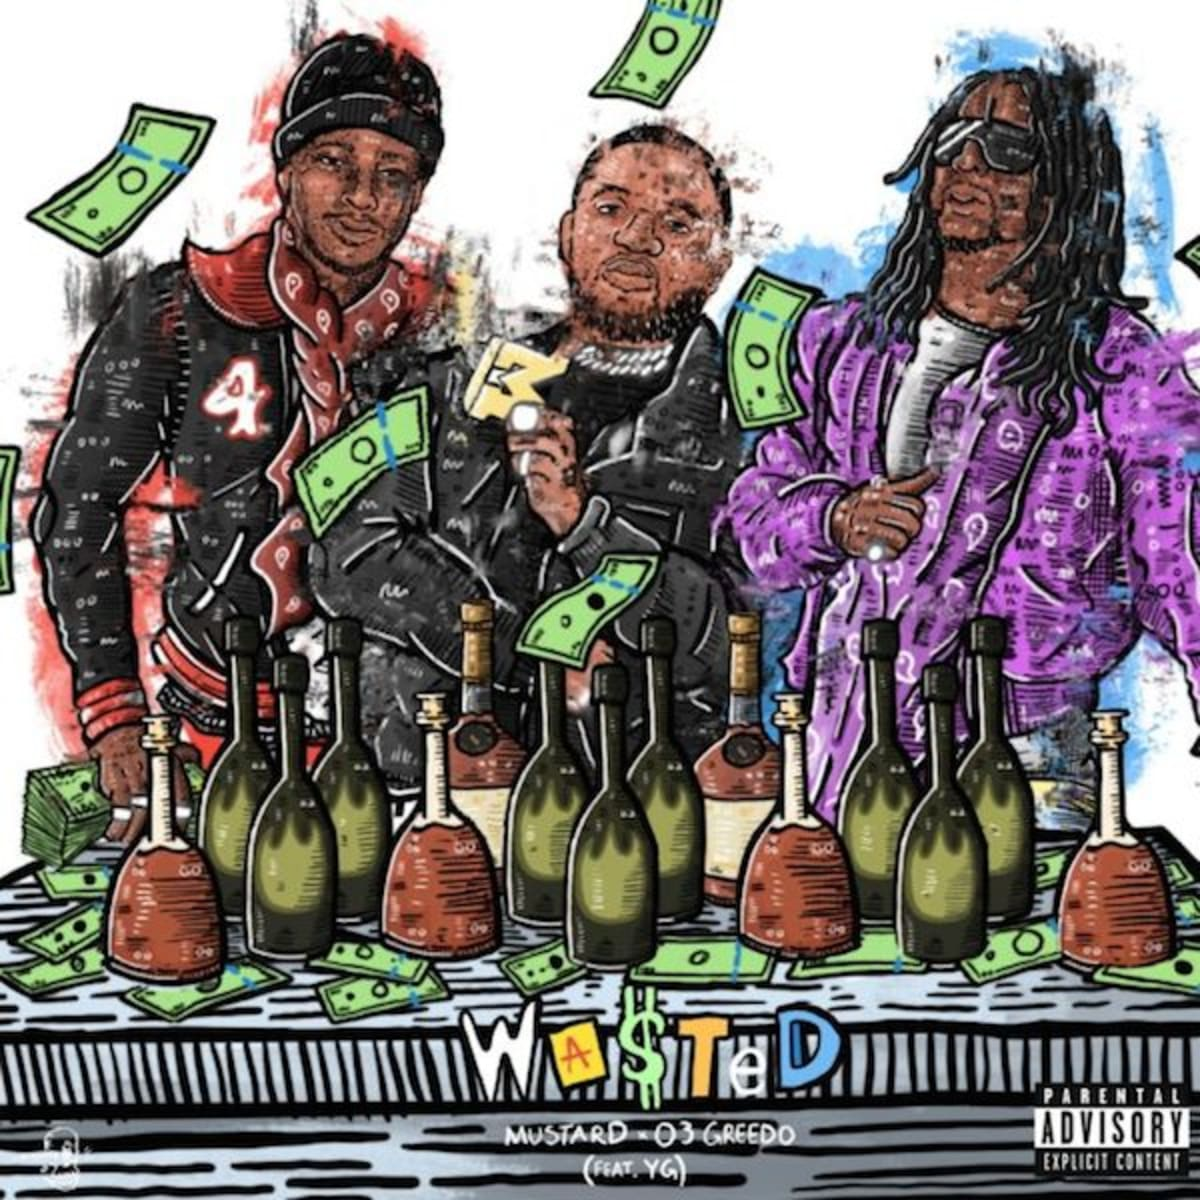 """03 Greedo and Mustard Link With YG on """"Wasted"""""""